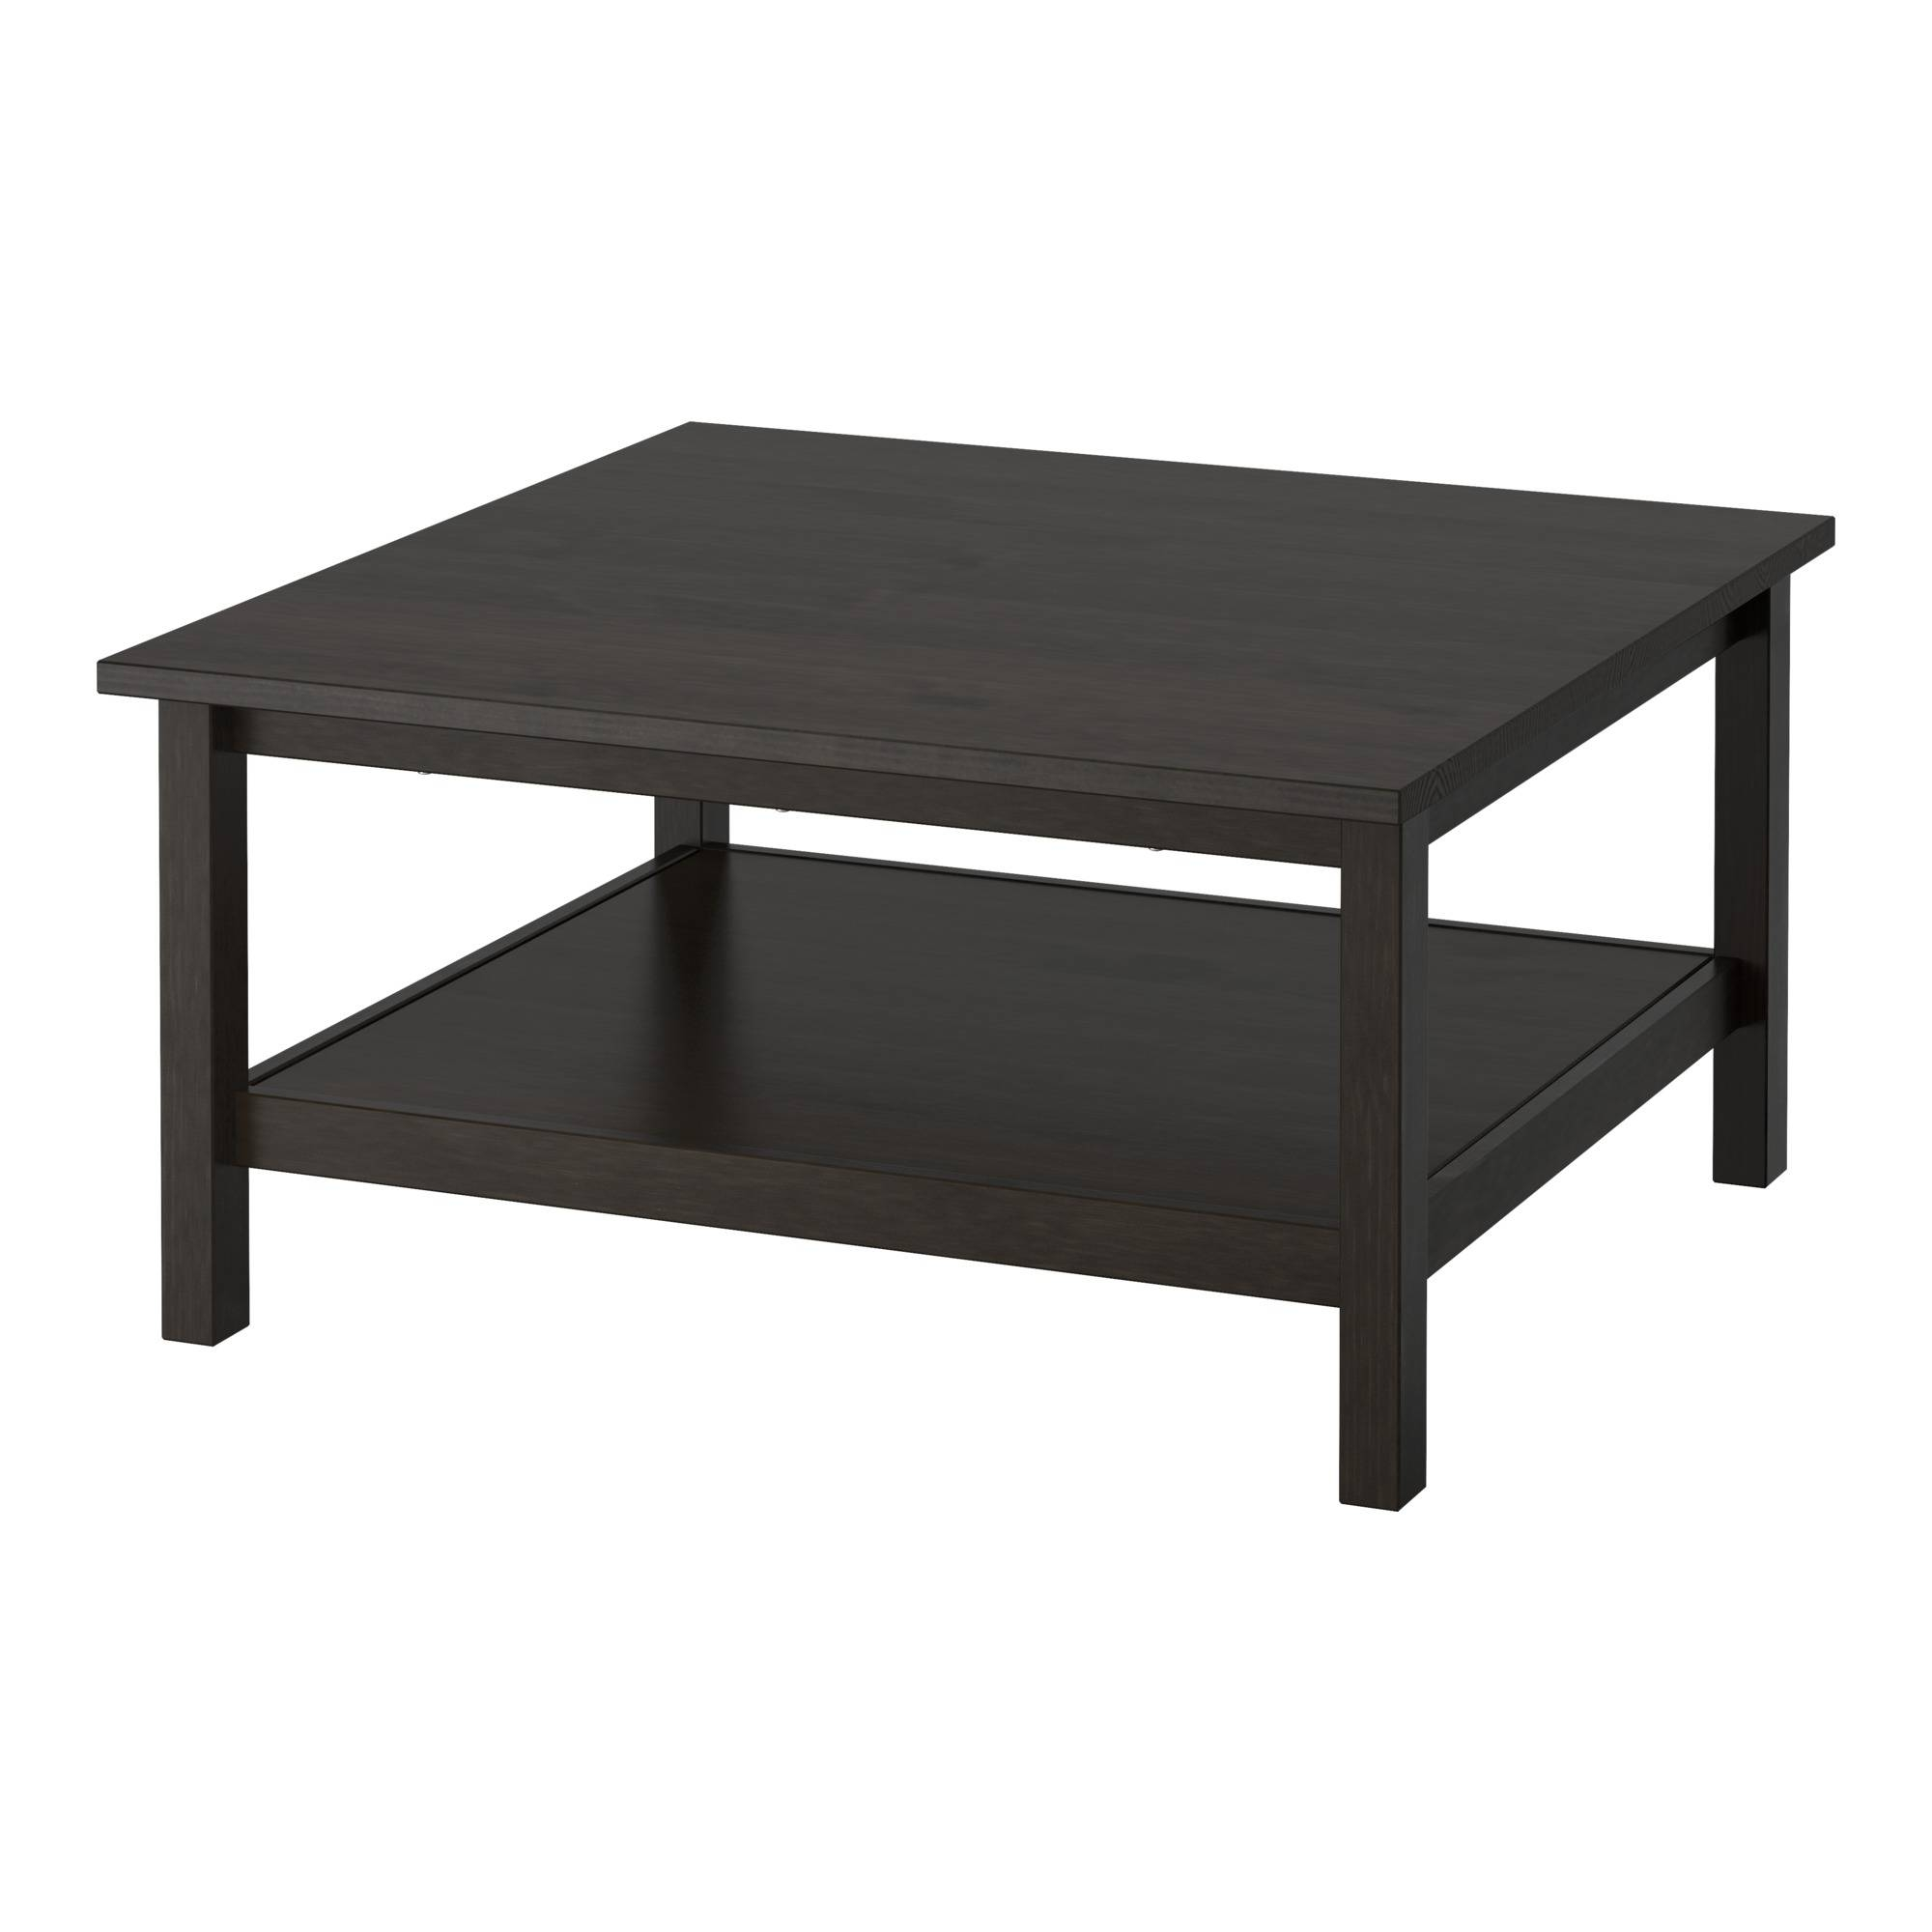 Hemnes Coffee Table - Black-Brown - Ikea regarding Elephant Glass Coffee Tables (Image 18 of 30)